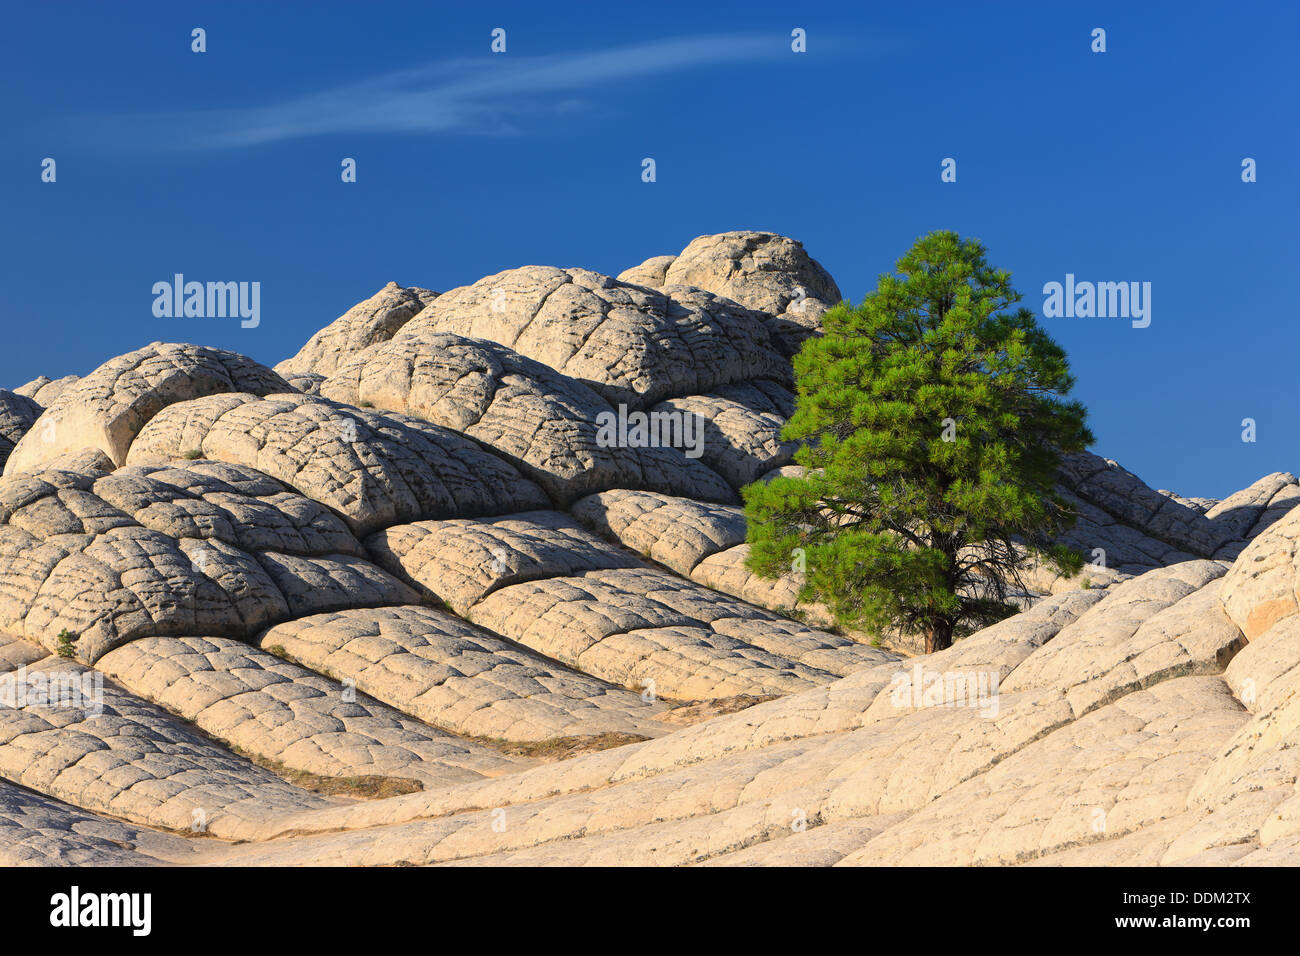 Lonesome tree at the White Pocket, Vermilion Cliffs National Monument - Stock Image